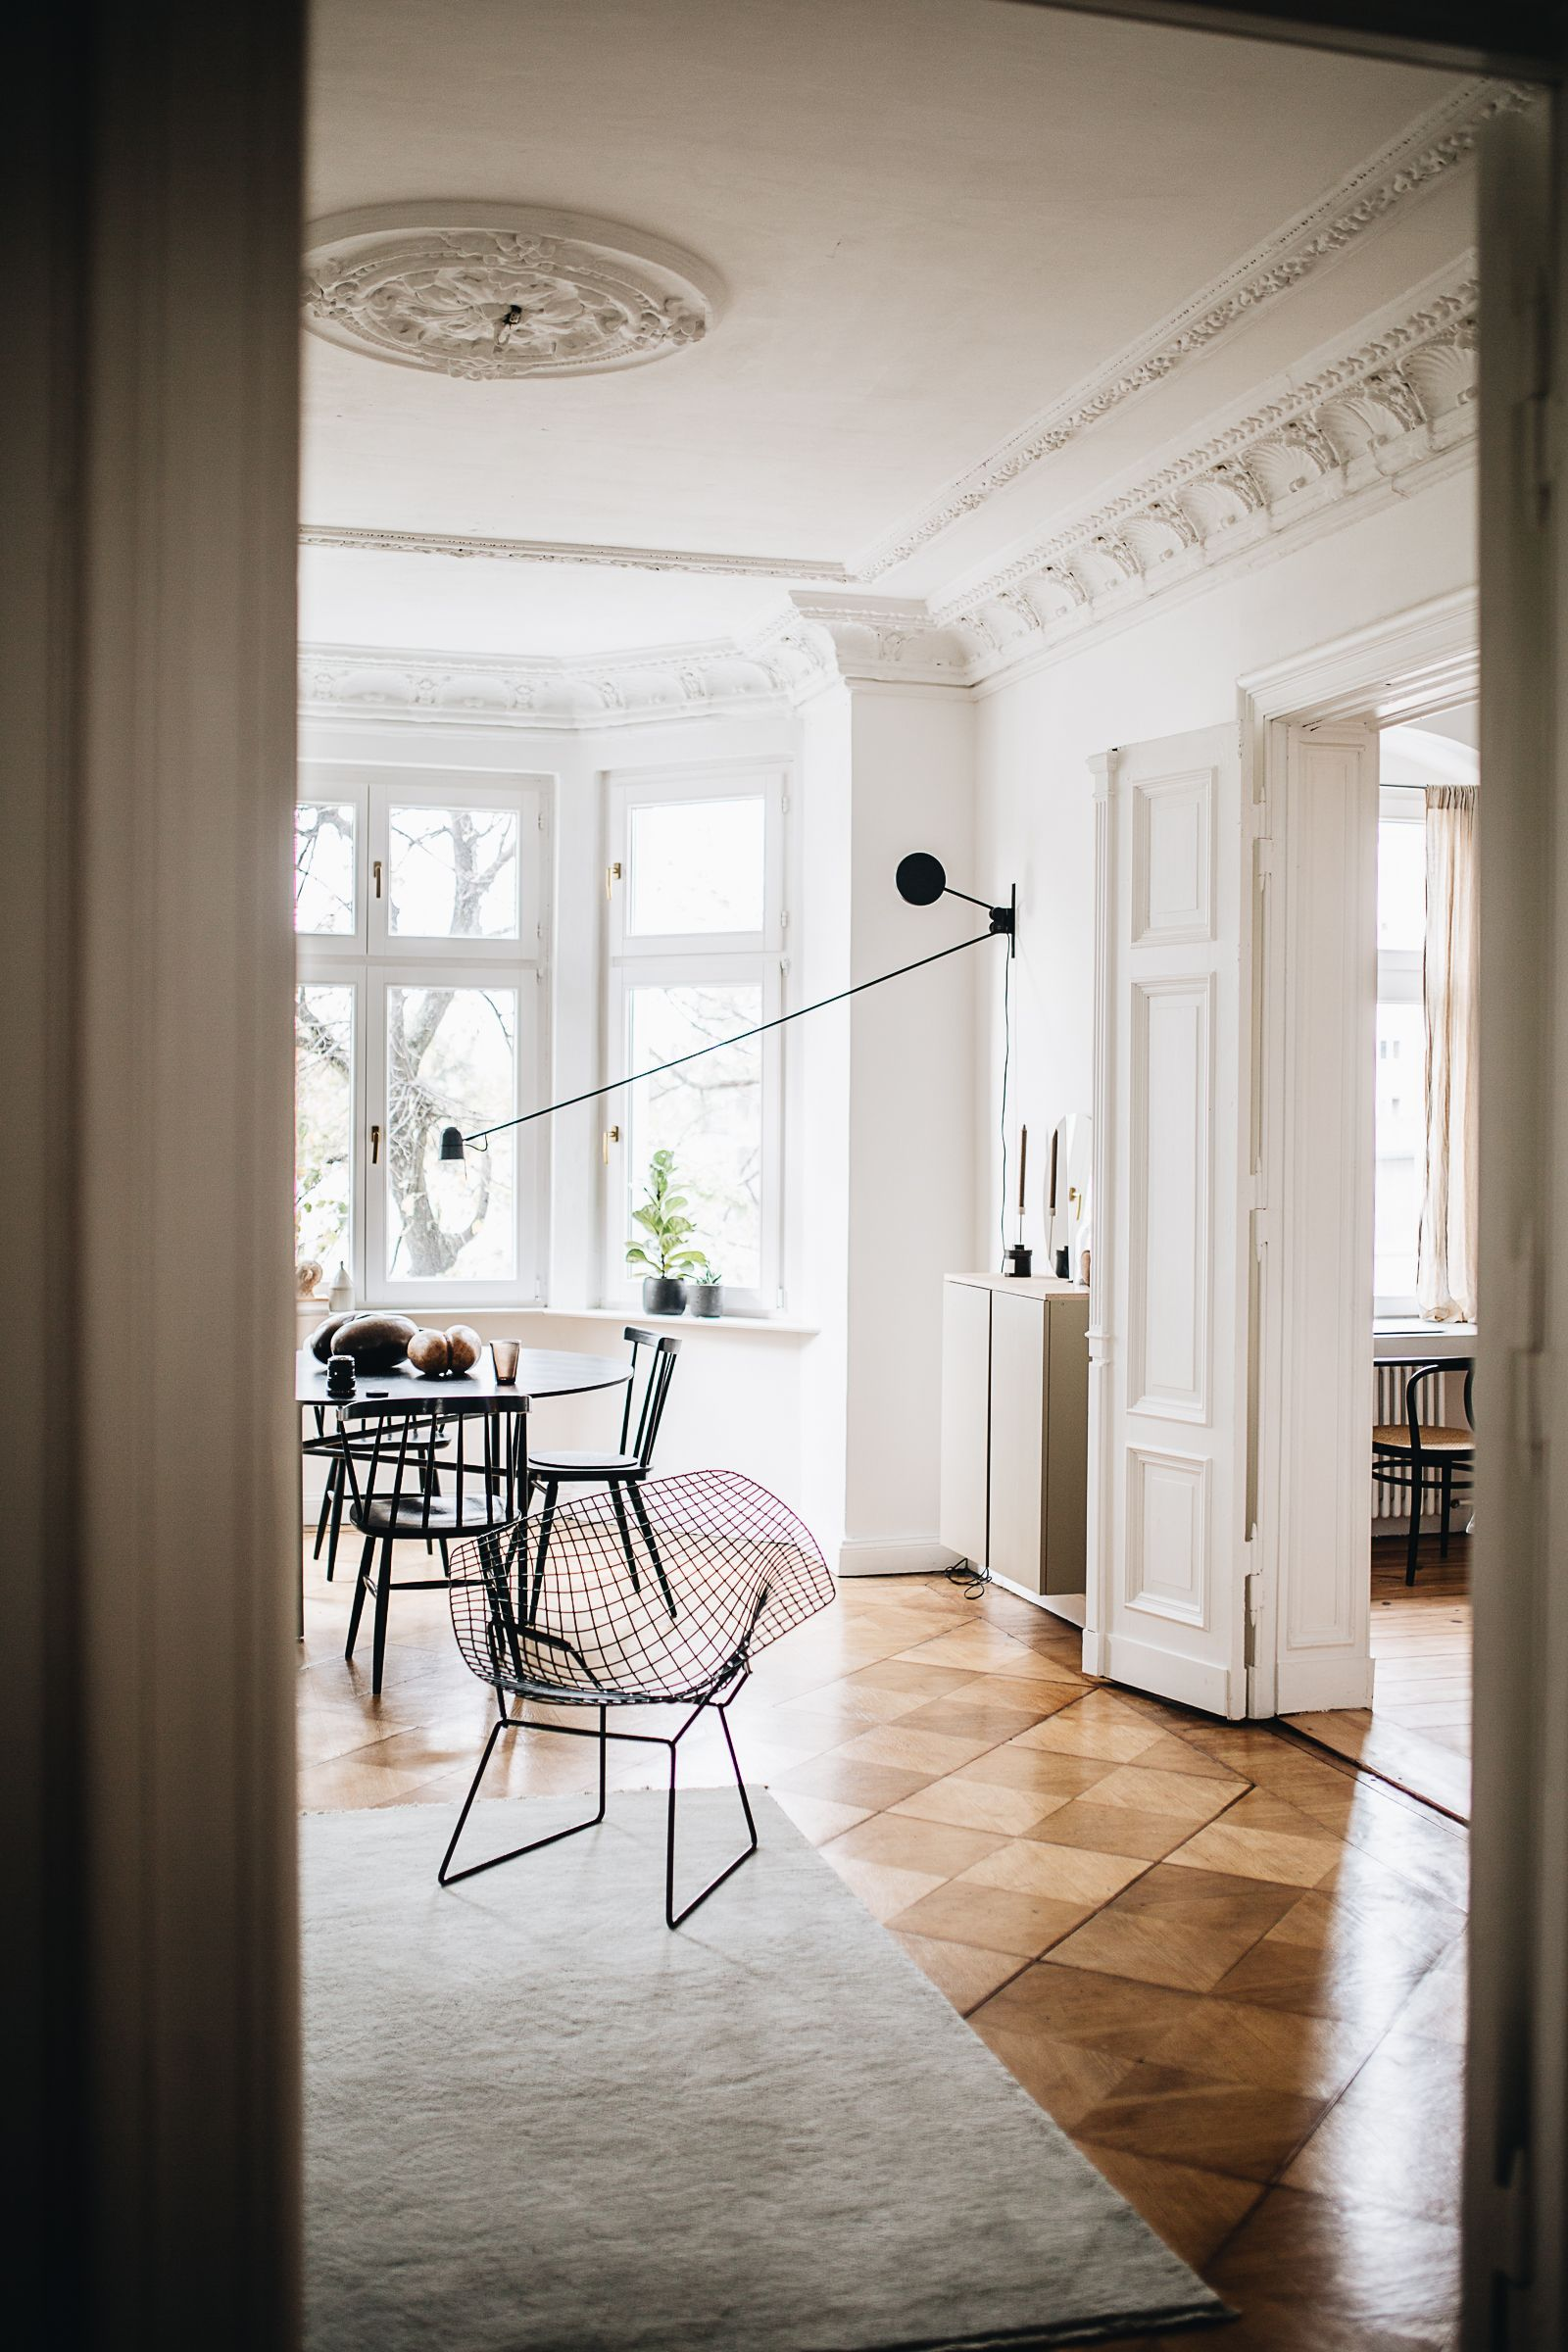 Zu Besuch bei Selina Lauck | Interiors, Living rooms and Room